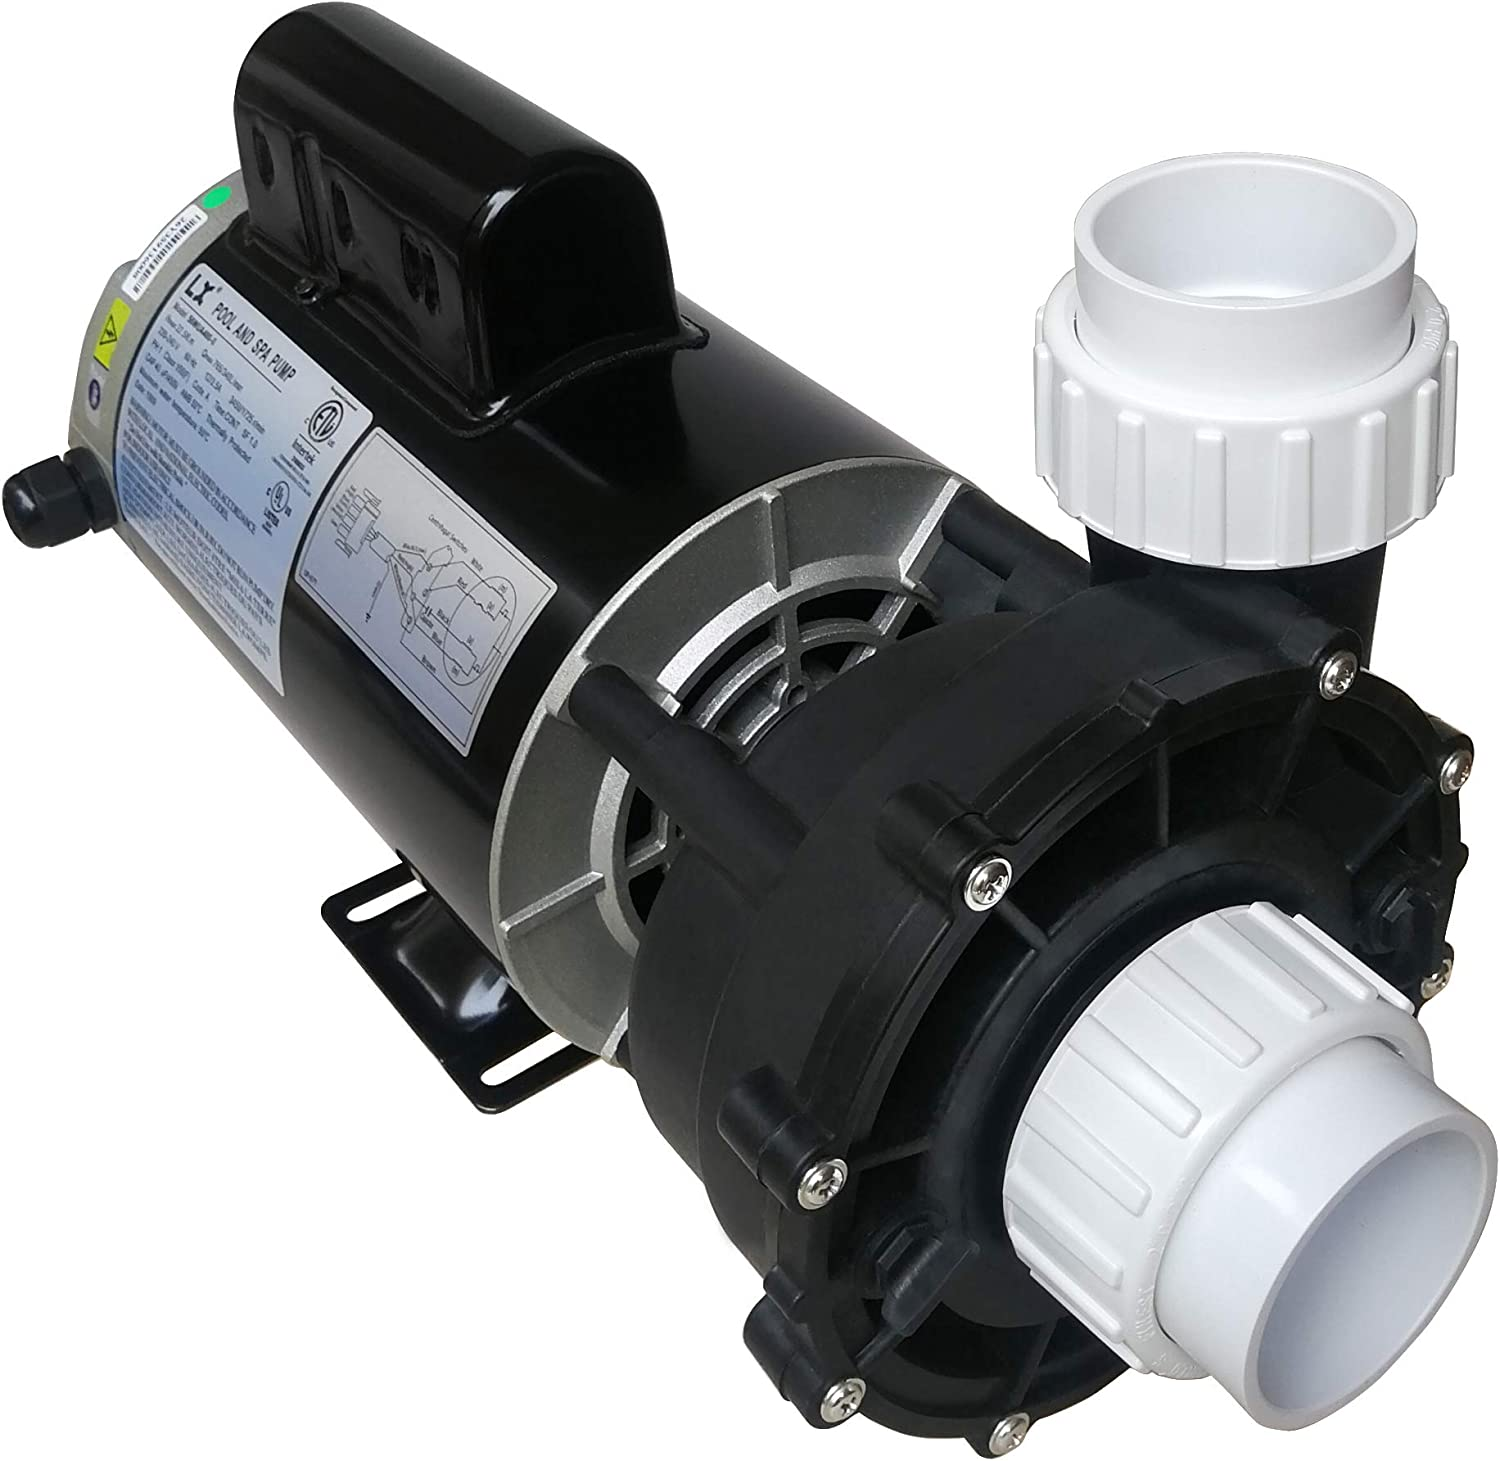 KL KEY LANDER Hot Tub Spa Pump LX 56Frame Two 4HP Speed Motor Fixed price for sale Financial sales sale